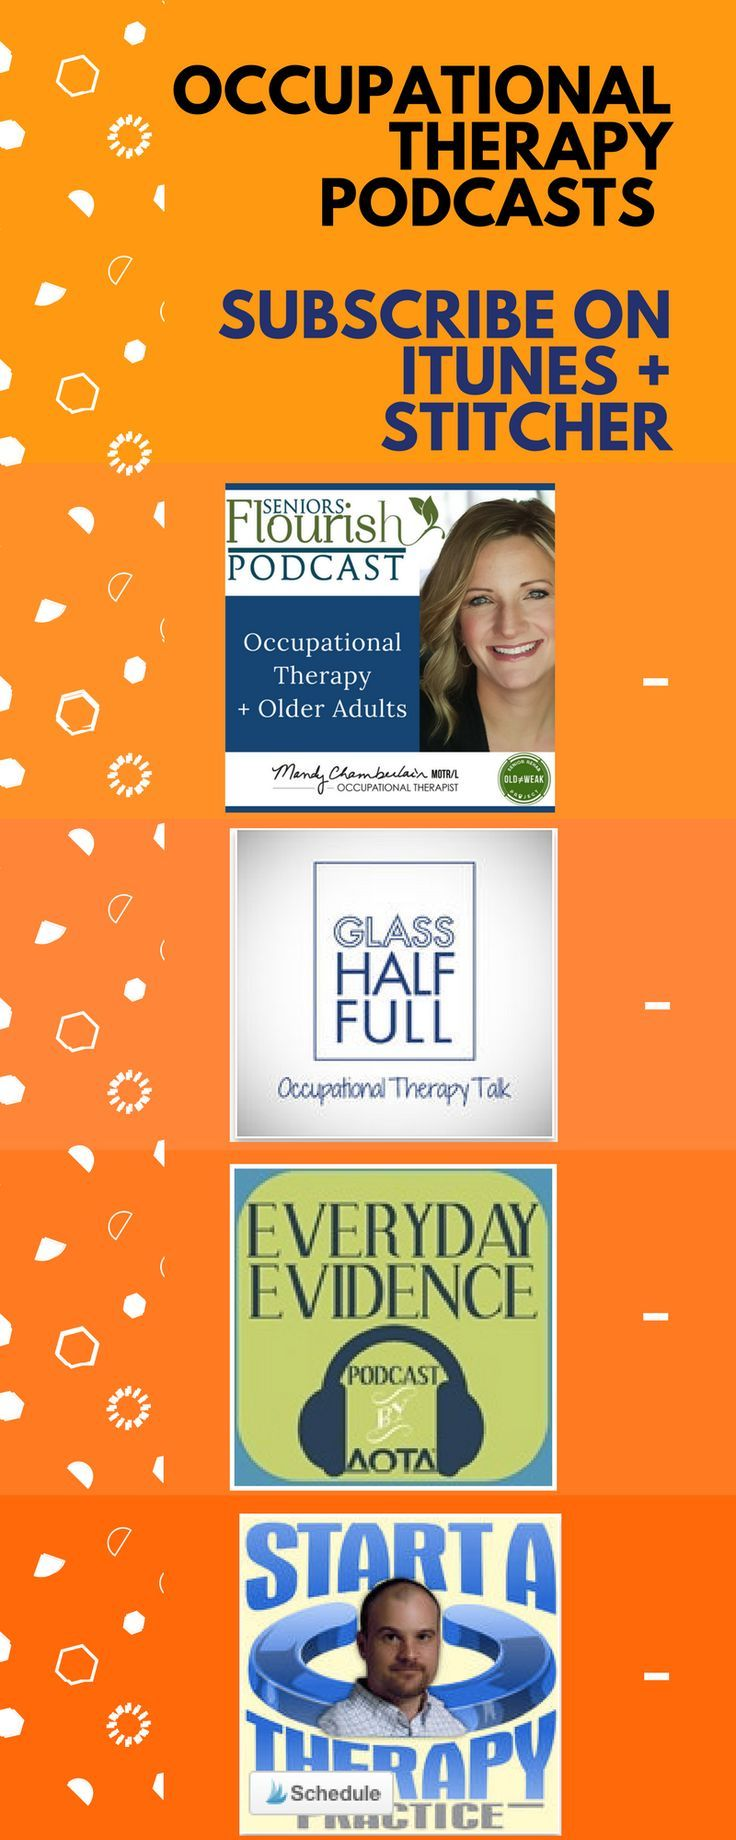 Check out these #OT podcasts - always learning and growing! @AOTAinc @ScottHarmon7 #OTpodcast